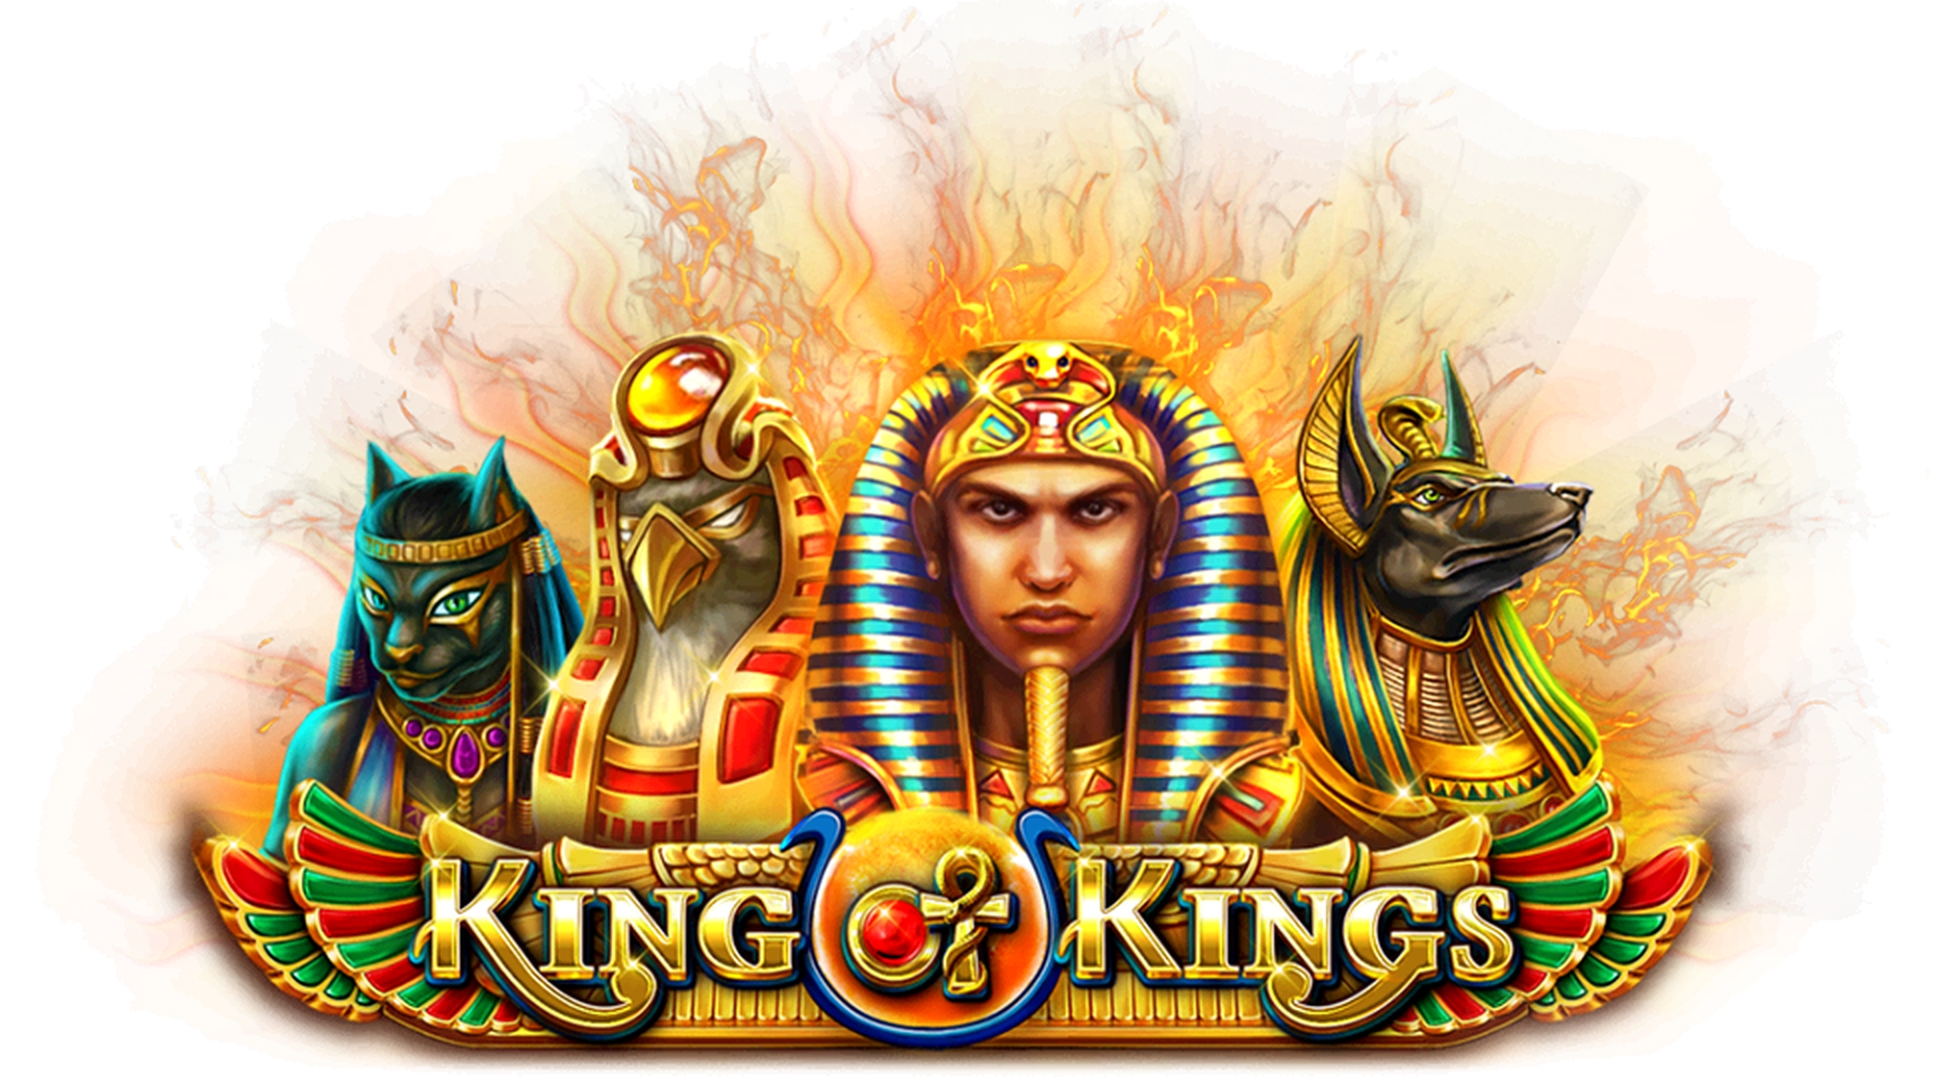 Se King of Kings Online Slot Demo Game, Relax Gaming